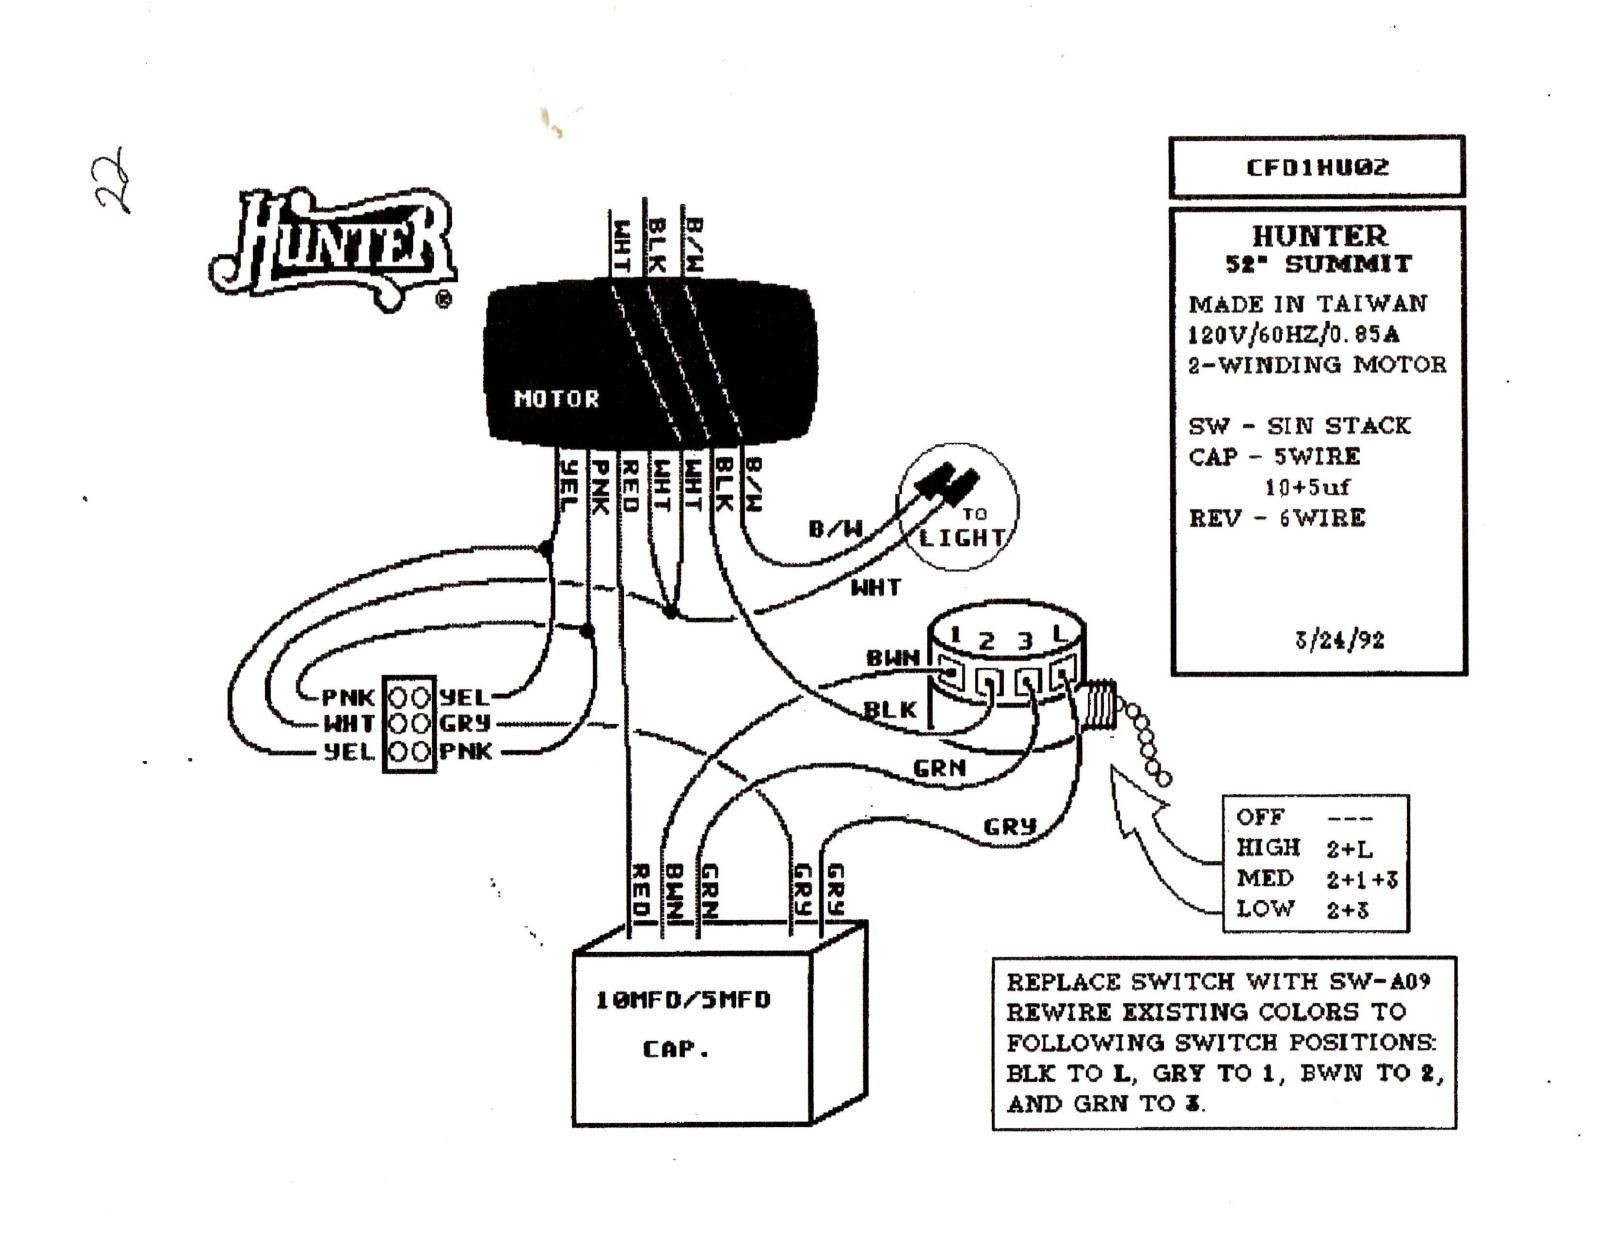 hunter ceiling fan capacitor wiring diagram Download-Wiring Diagram for Ceiling Fan Speed Switch New Wiring Diagram for Ceiling Fan Switch New Hunter 4-i